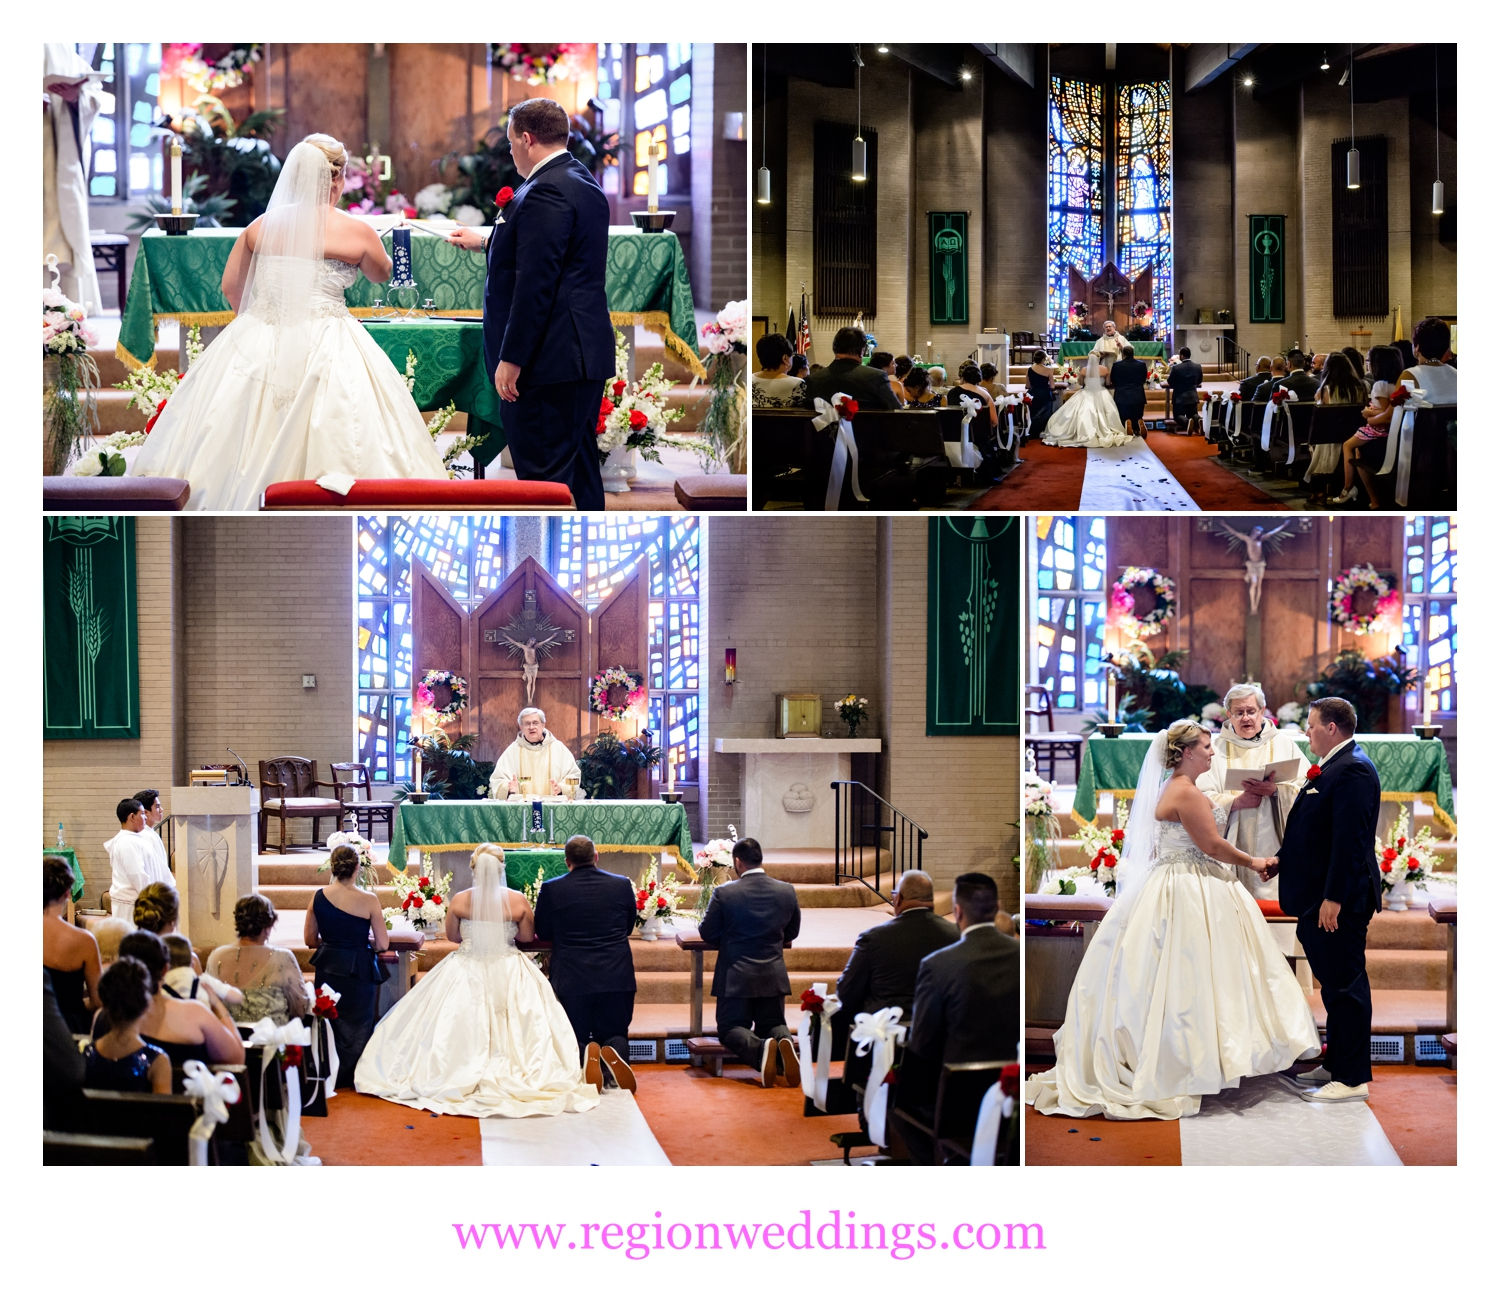 The bride and groom join together at Annunciata Church in Chicago, Illinois.